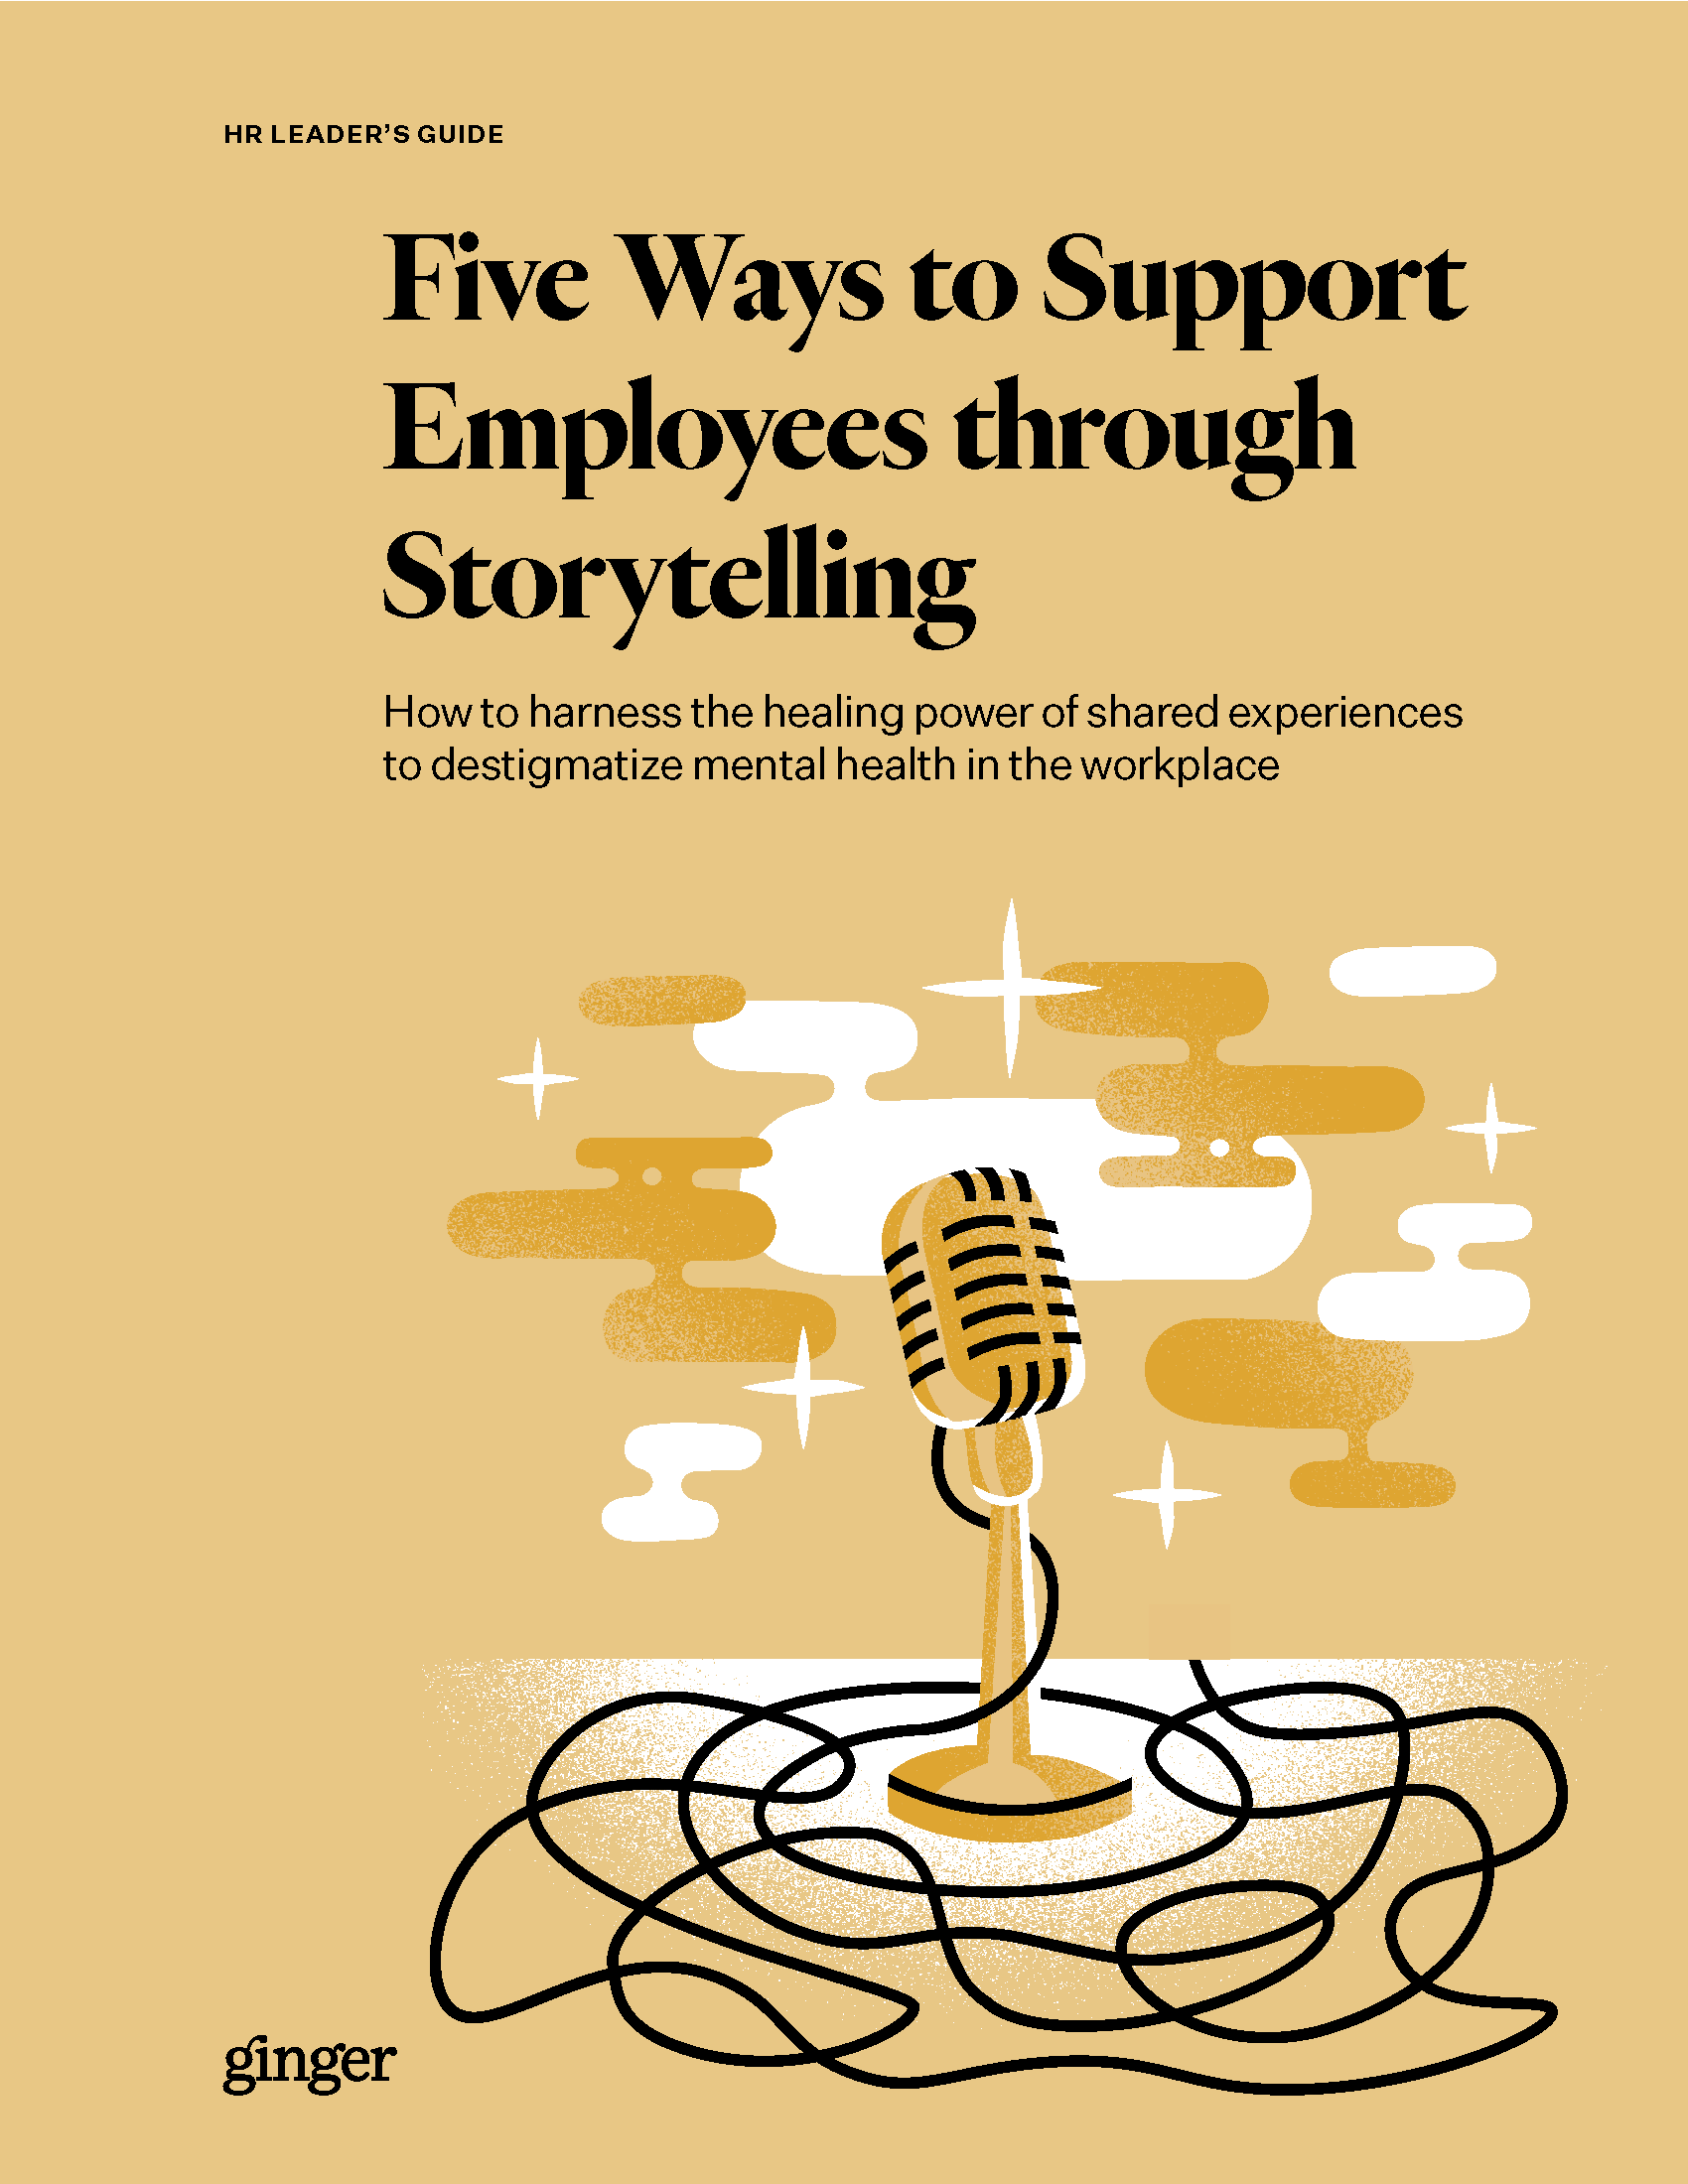 5 Ways to Support Employees Through Storytelling